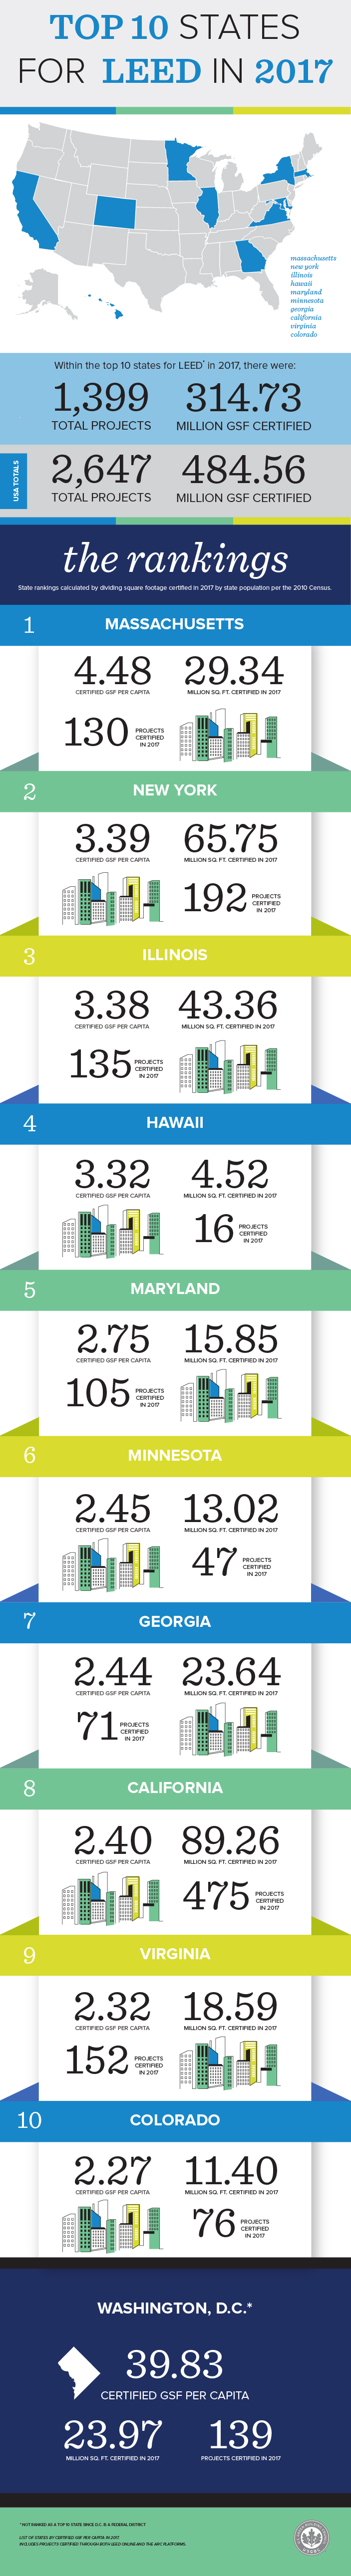 Top_10_States_2017_infographic_FINAL.jpg